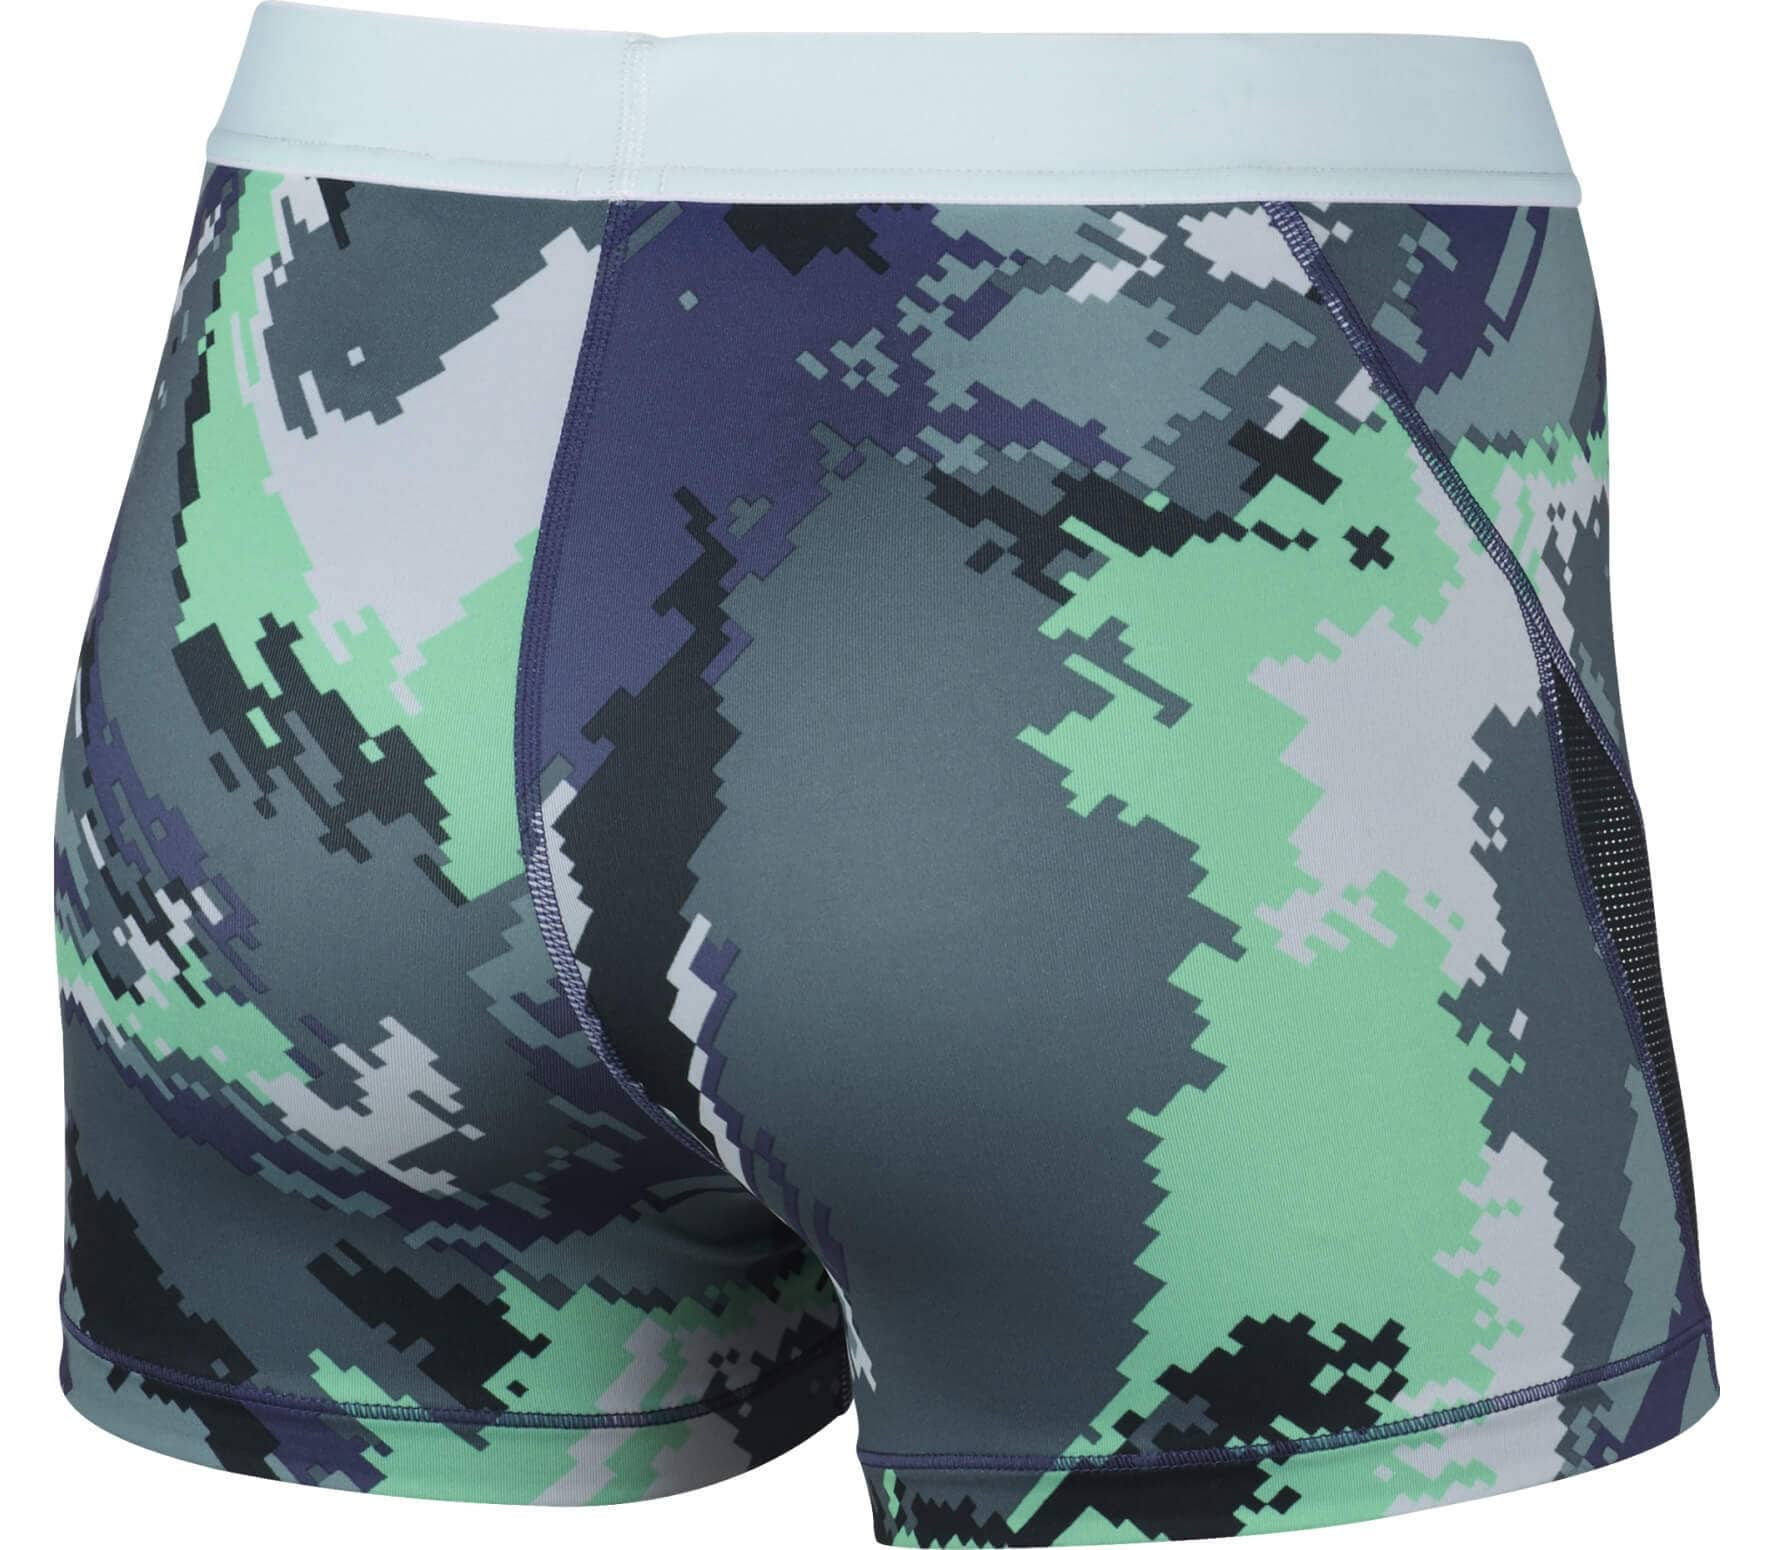 clearance prices sleek classic shoes Nike Pro Hypercool women's training shorts Femmes